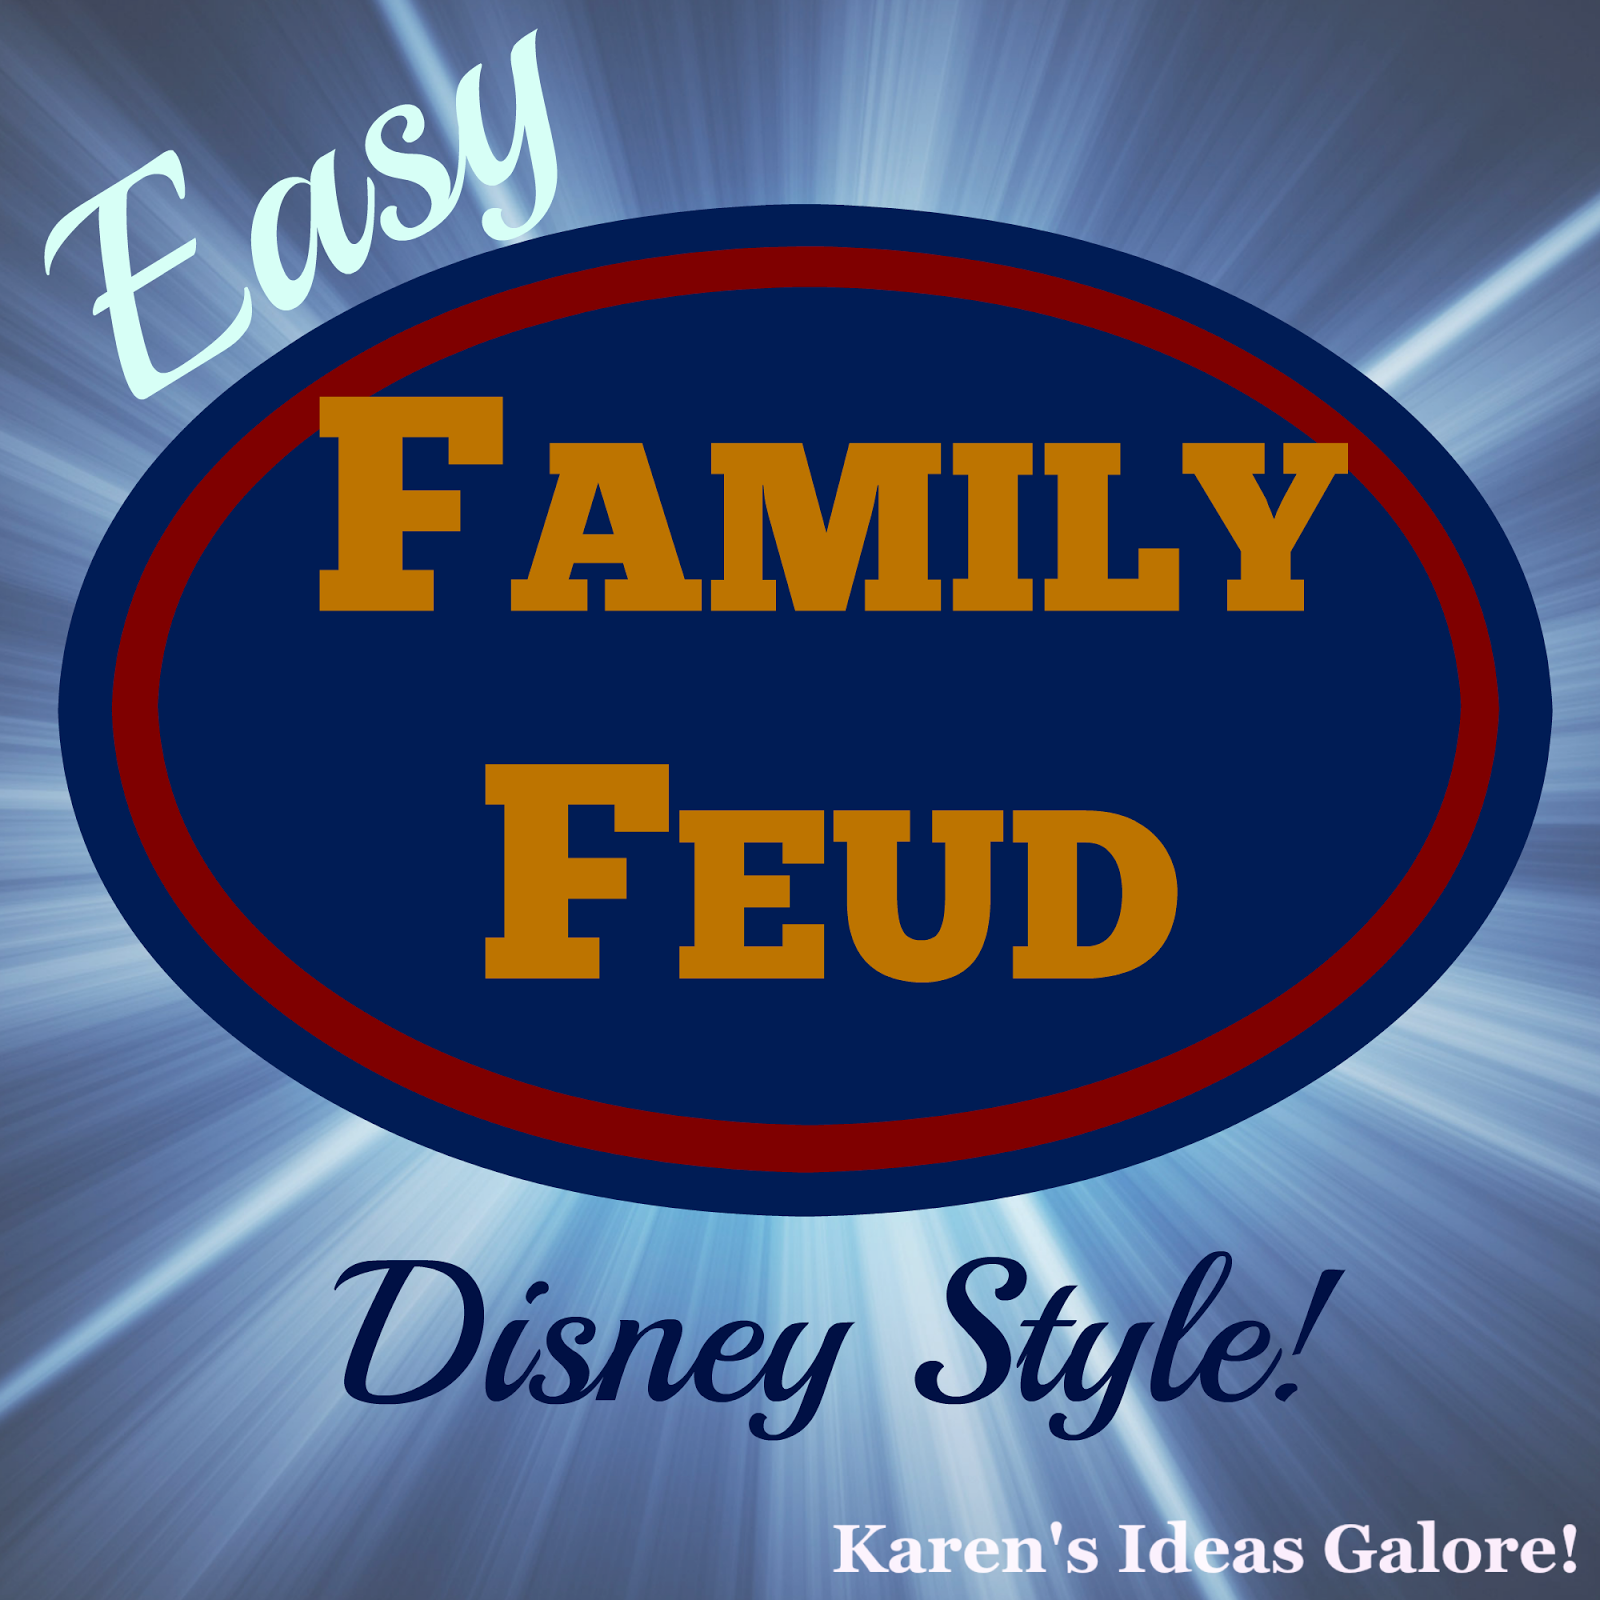 picture regarding Family Feud Printable identified as Karens Options Galore!: Disney \